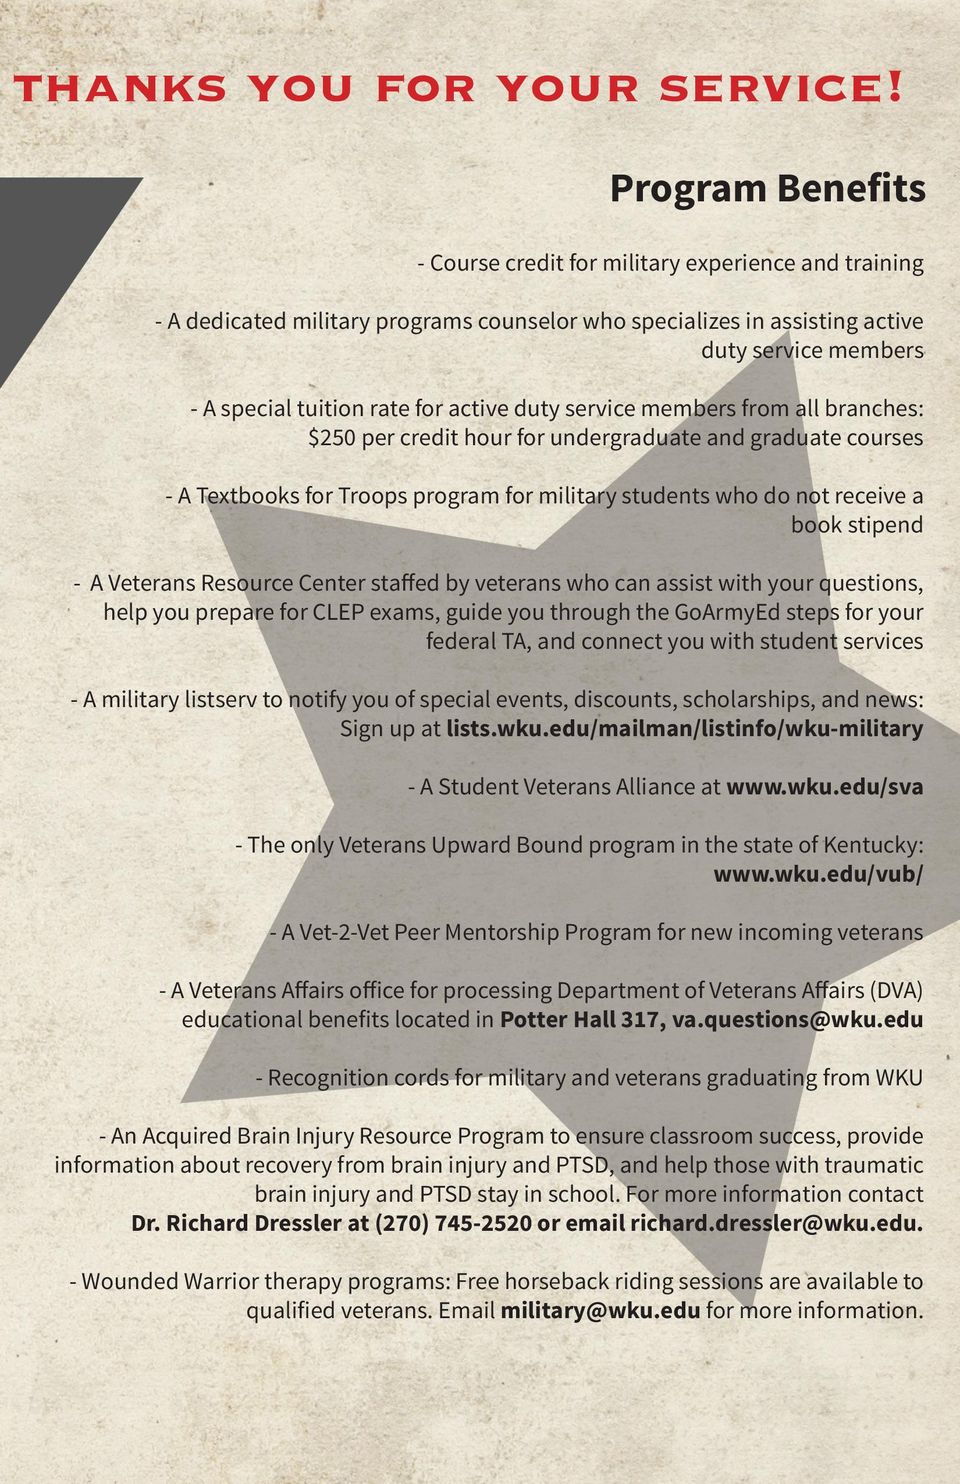 active duty service members from all branches: $250 per credit hour for undergraduate and graduate courses - A Textbooks for Troops program for military students who do not receive a book stipend - A